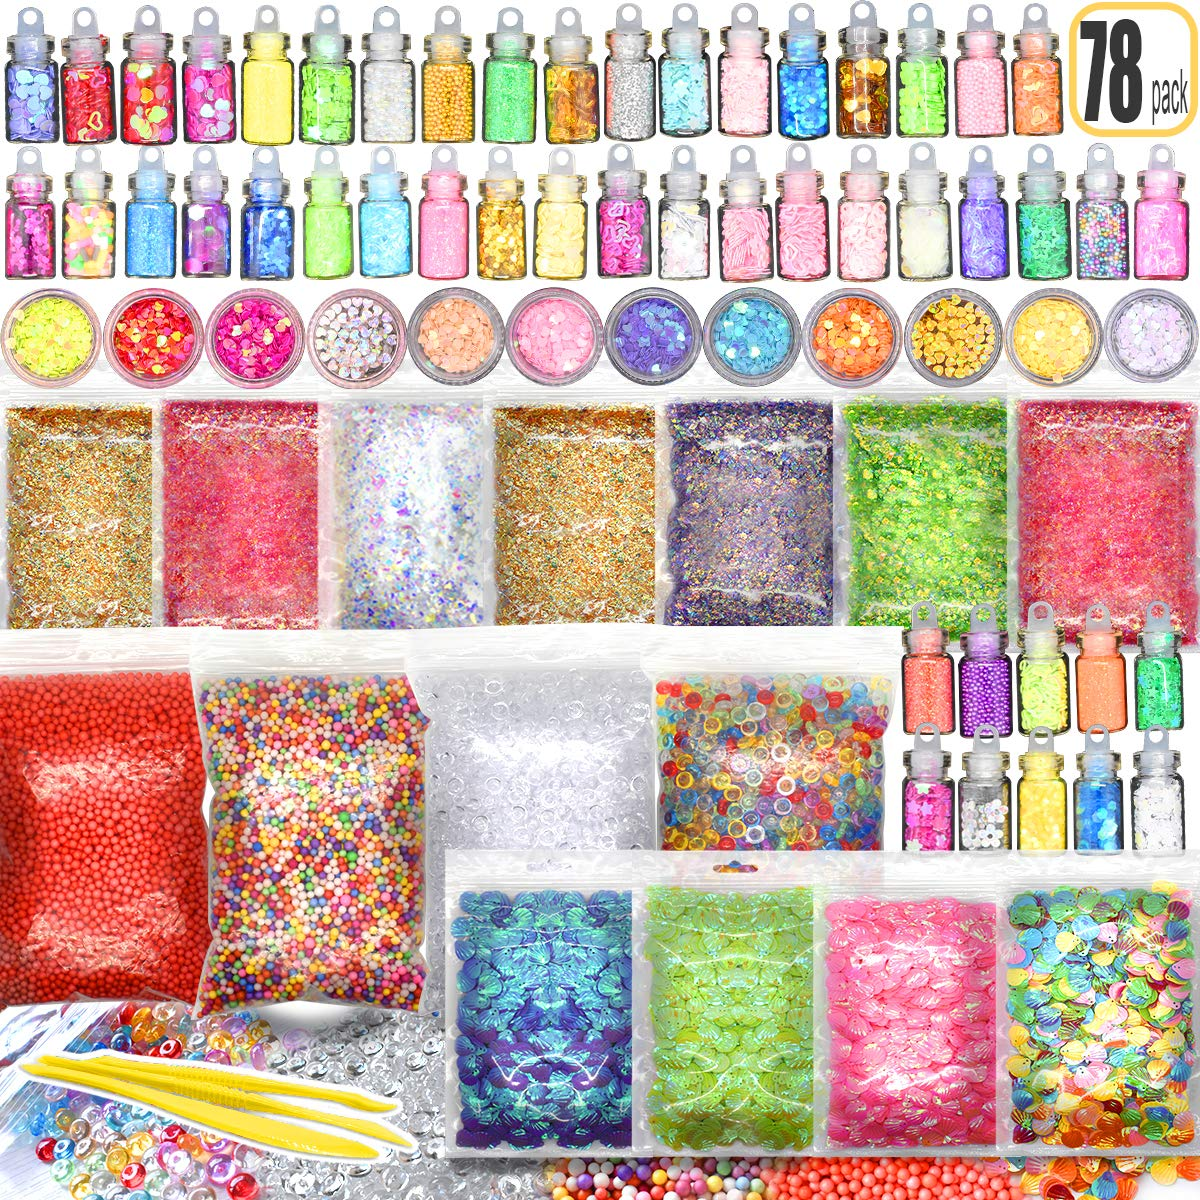 78PCS Slime Supplies Kit Include Sugar Paper Accessories Floam Beads Fishbowl Beads Glitter Jars Heart Slices Shell Slime Kits for Kids to Make Slime Toys Hulluter